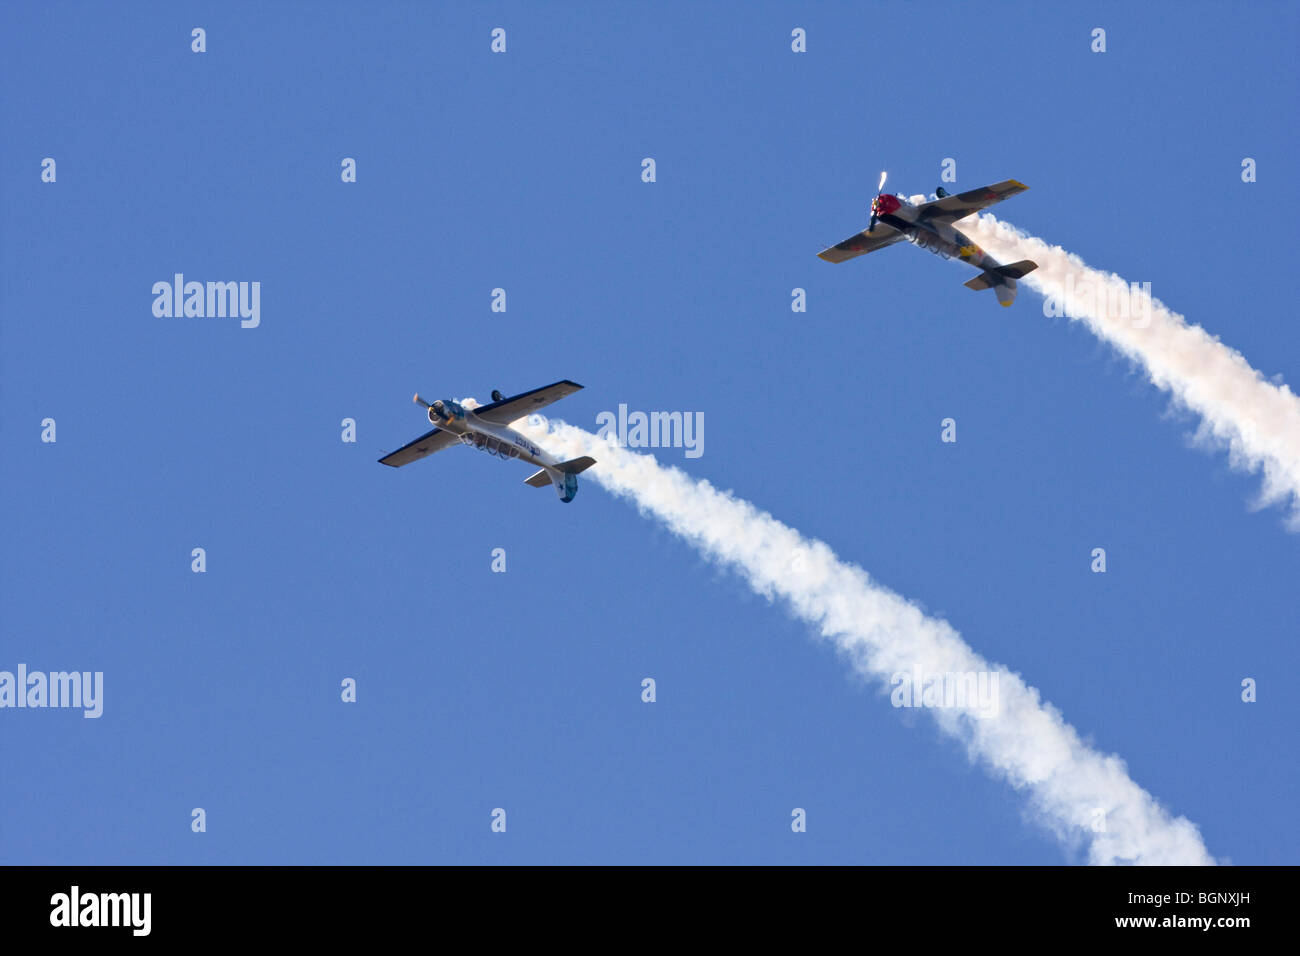 The Cossacks, aerobatic display team flying Yak 52's at RAF Leuchars Airshow 2009, Fife, Scotland - Stock Image